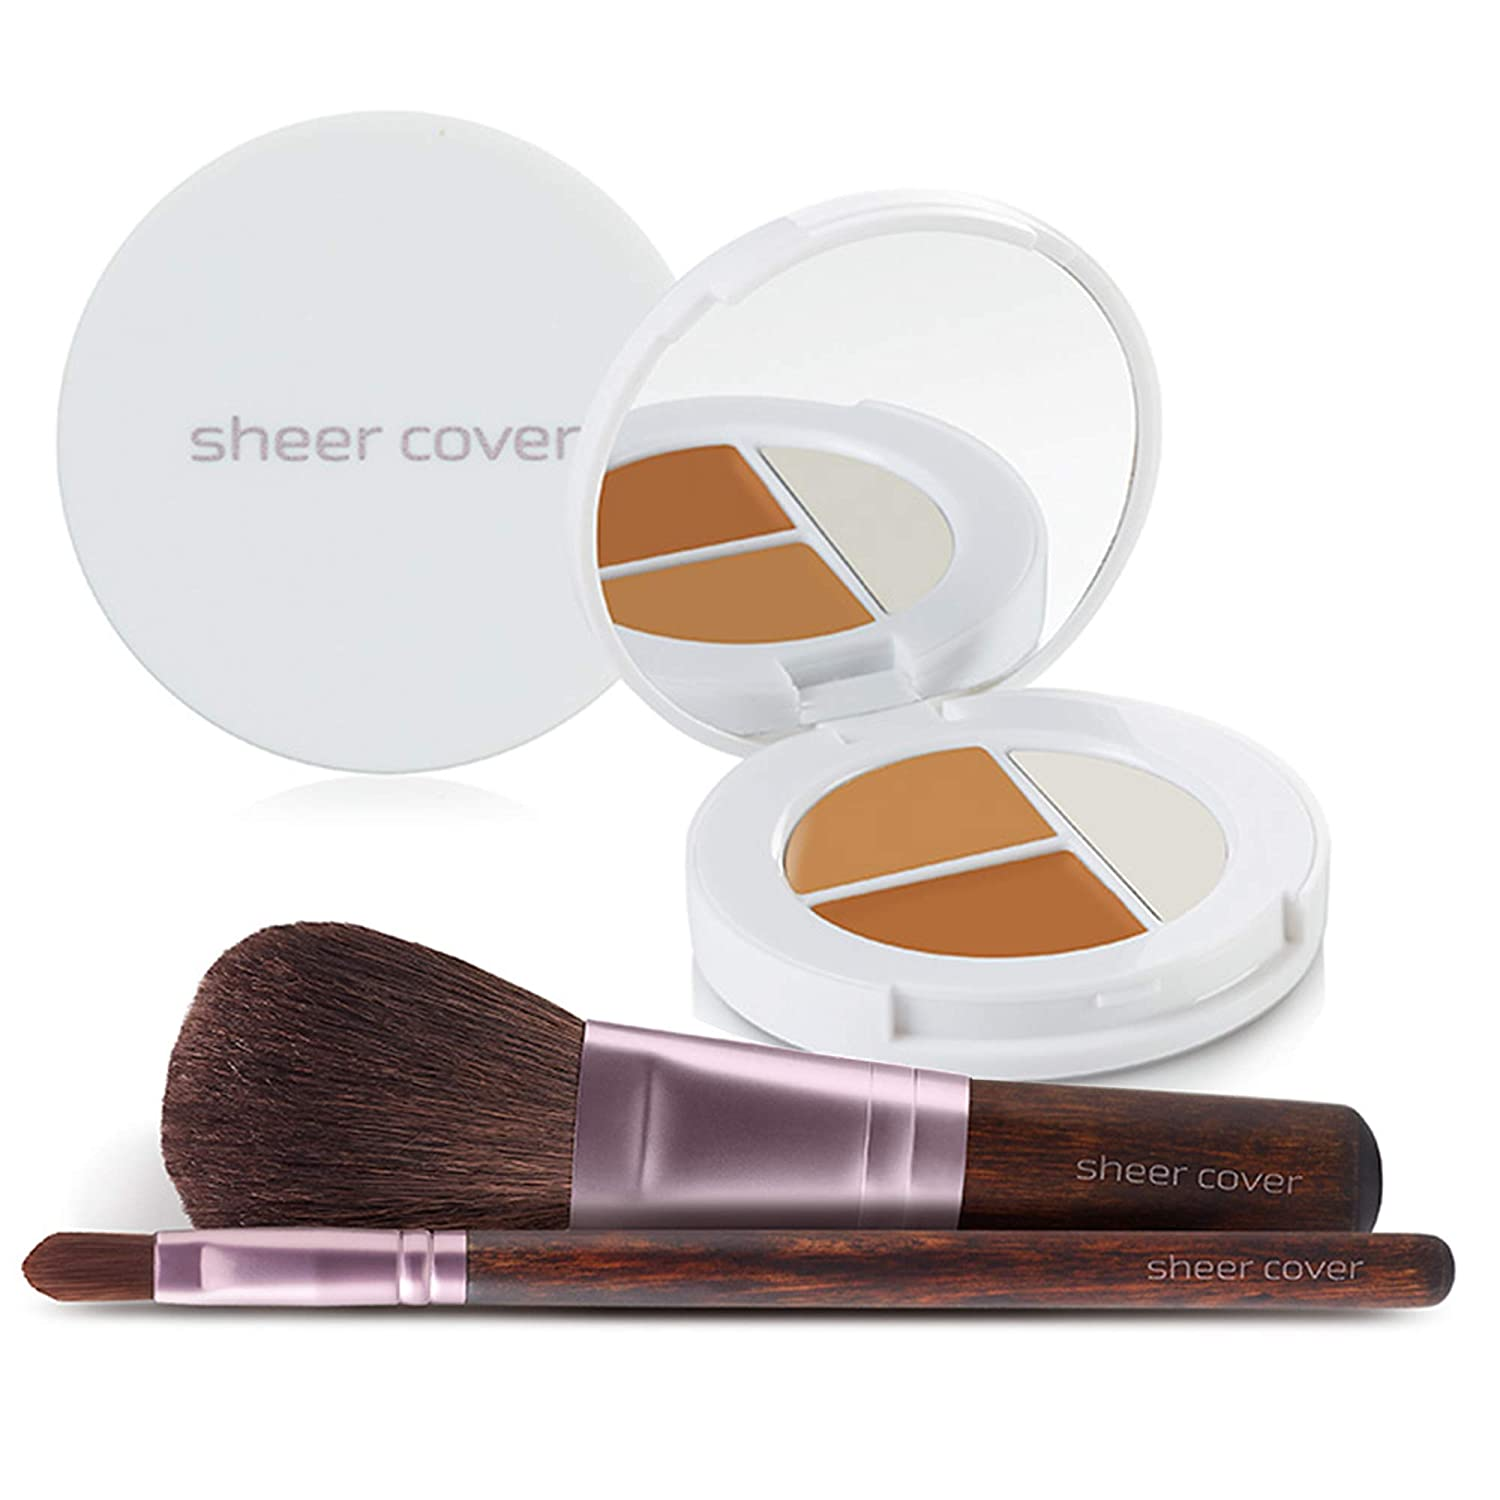 Amazon com sheer cover studio starter face kit perfect shade mineral foundation conceal brighten highlight trio with free foundation brush and